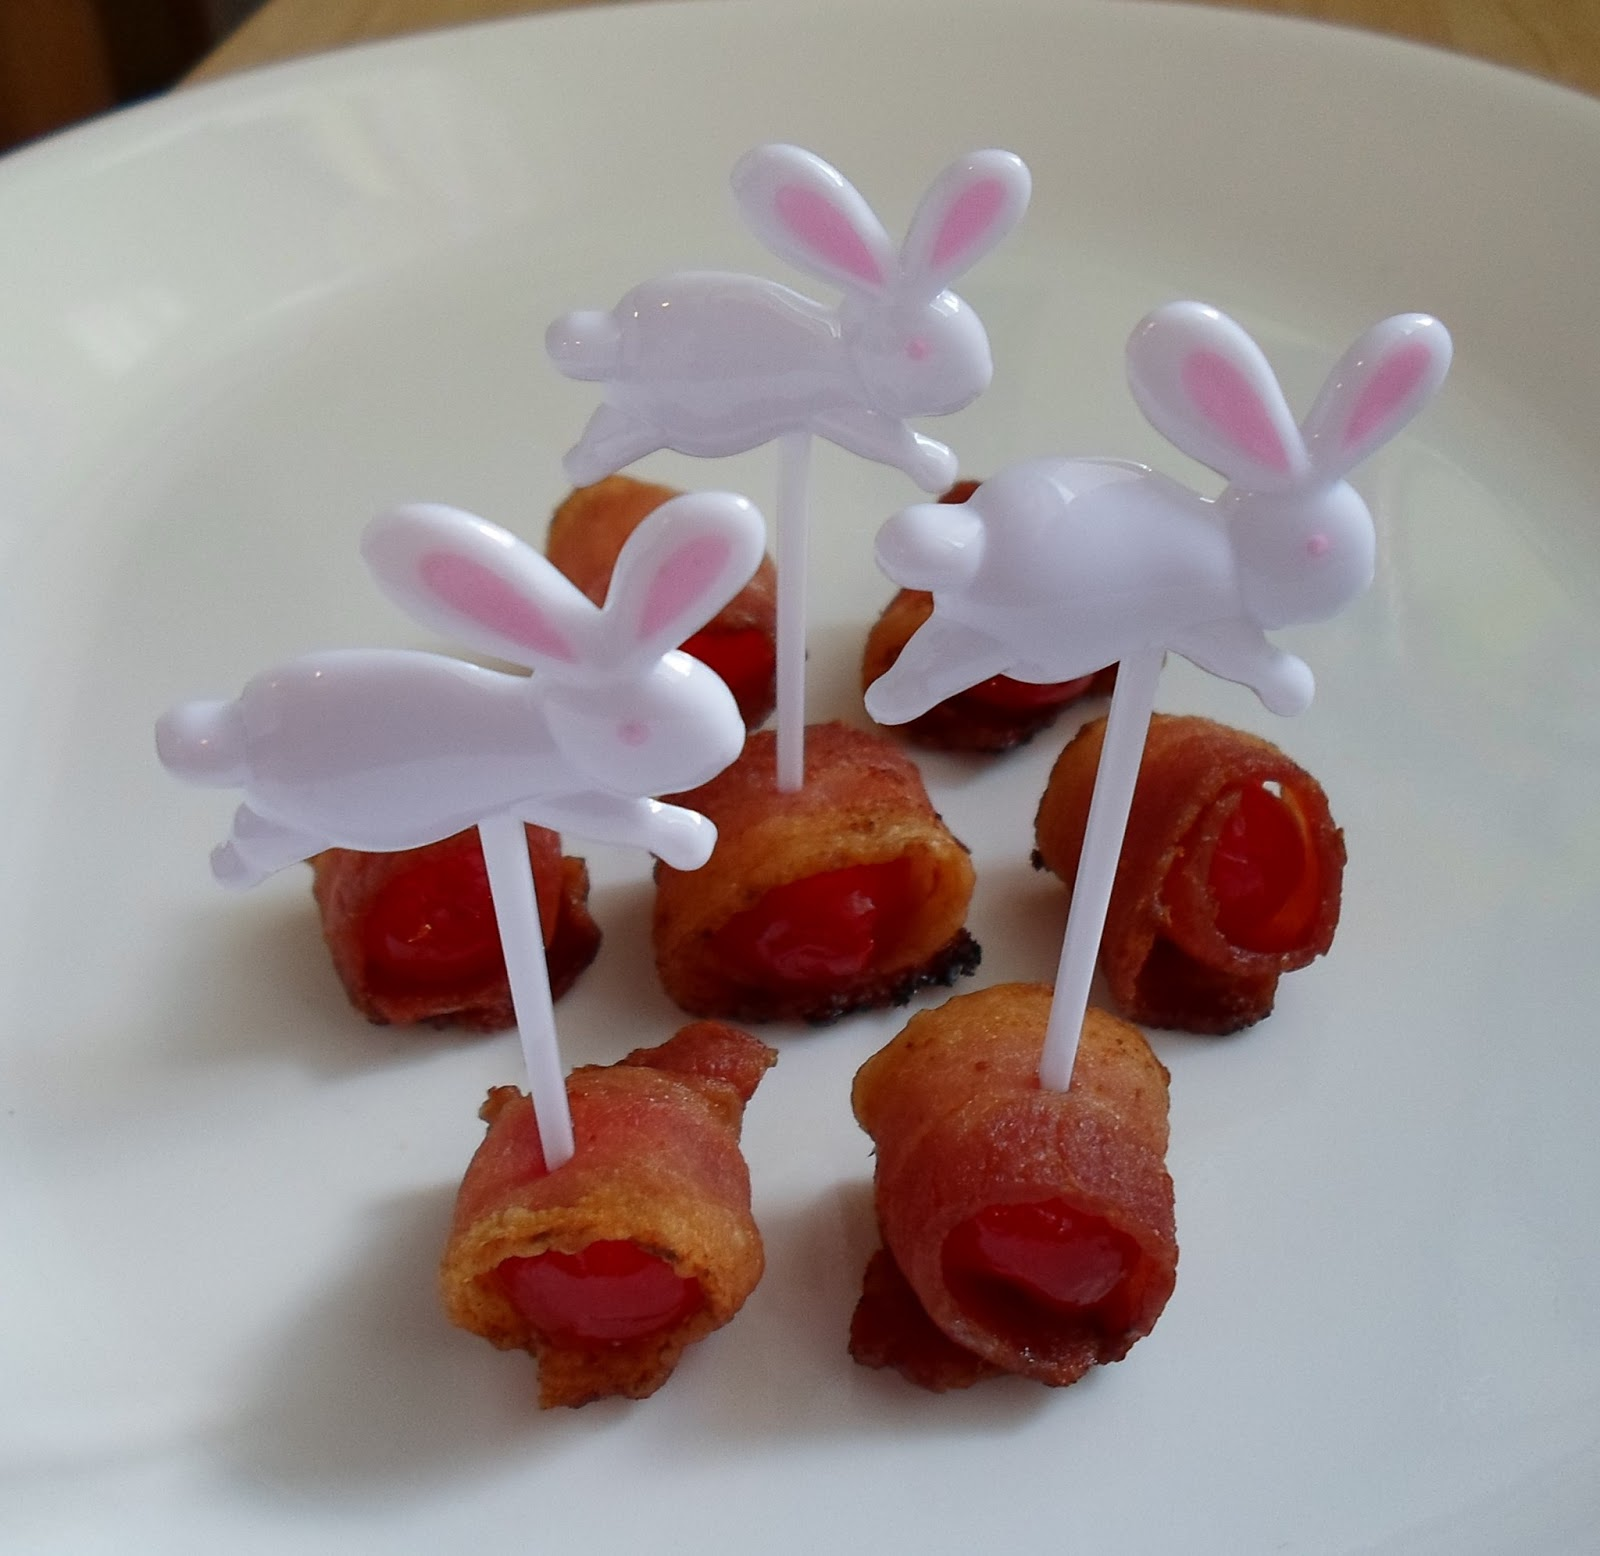 Happier Than A Pig In Mud: Bacon Wrapped Maraschino Cherry